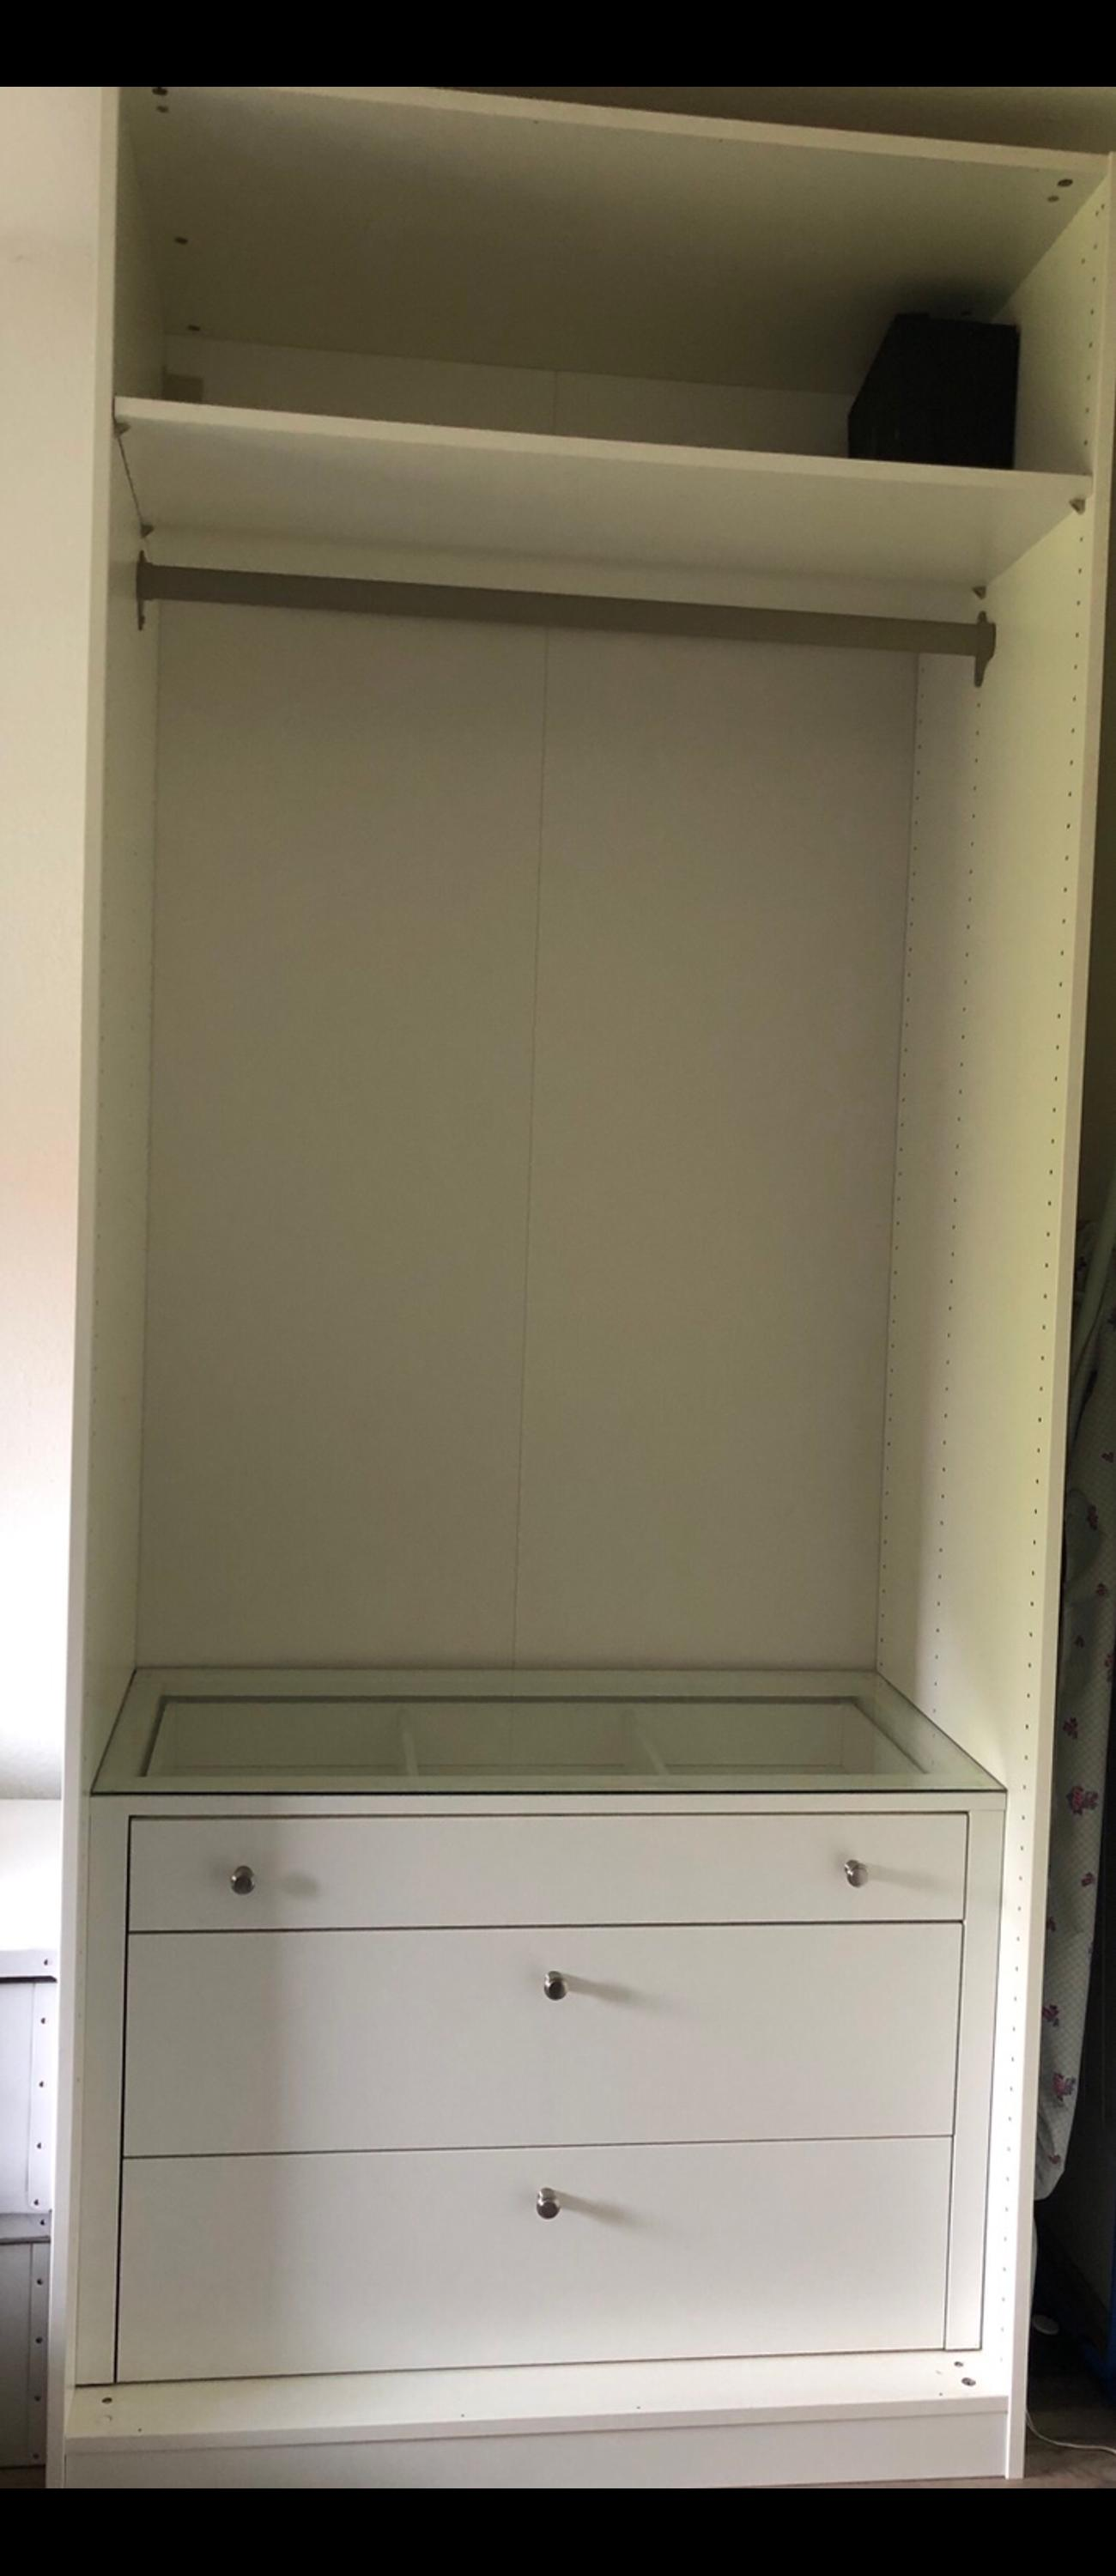 Pax Kleiderschrank Ikea In 52146 Wurselen For 130 00 For Sale Shpock